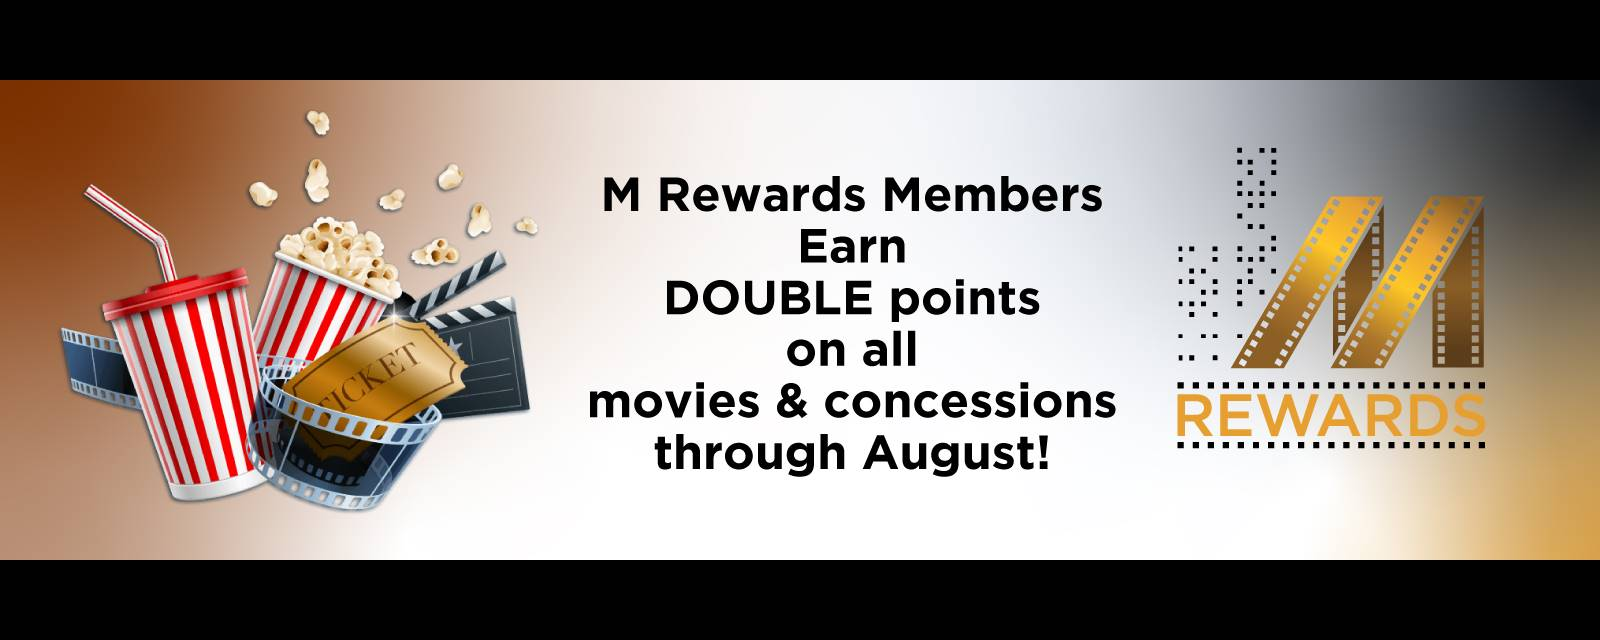 M Rewards Double Points